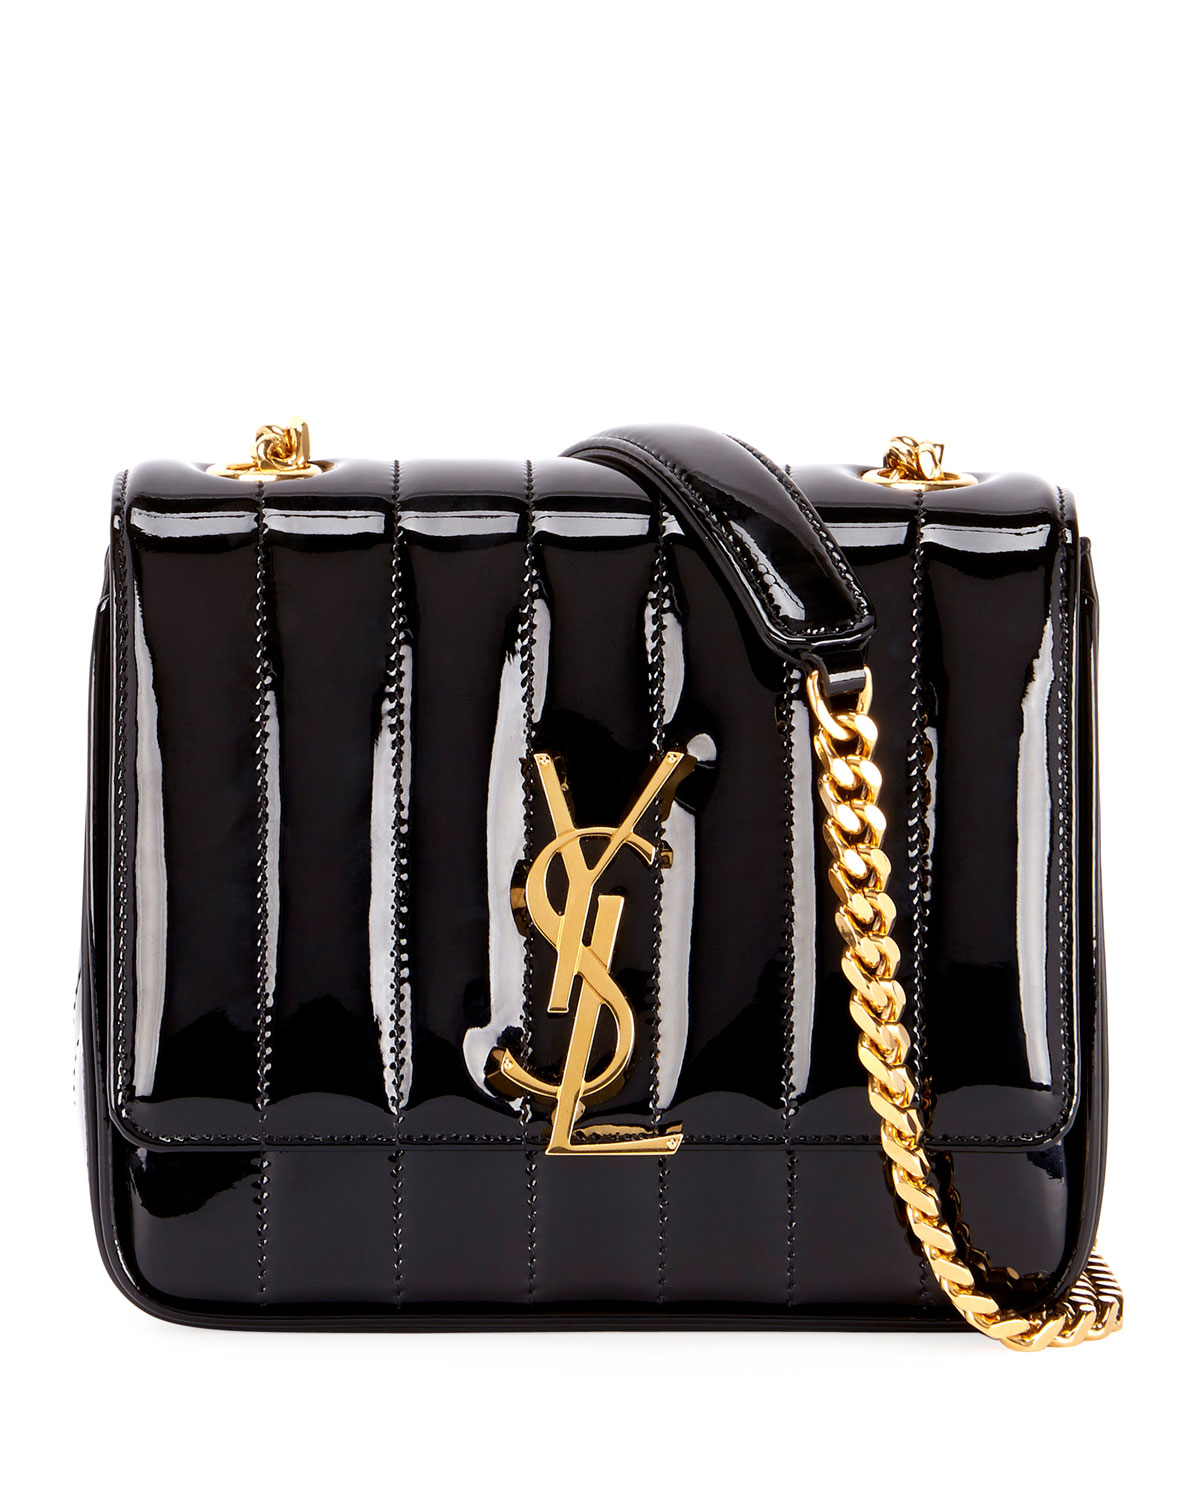 652d3ee3aed7 Saint LaurentVicky Monogram YSL Small Quilted Patent Leather Crossbody Bag.   1